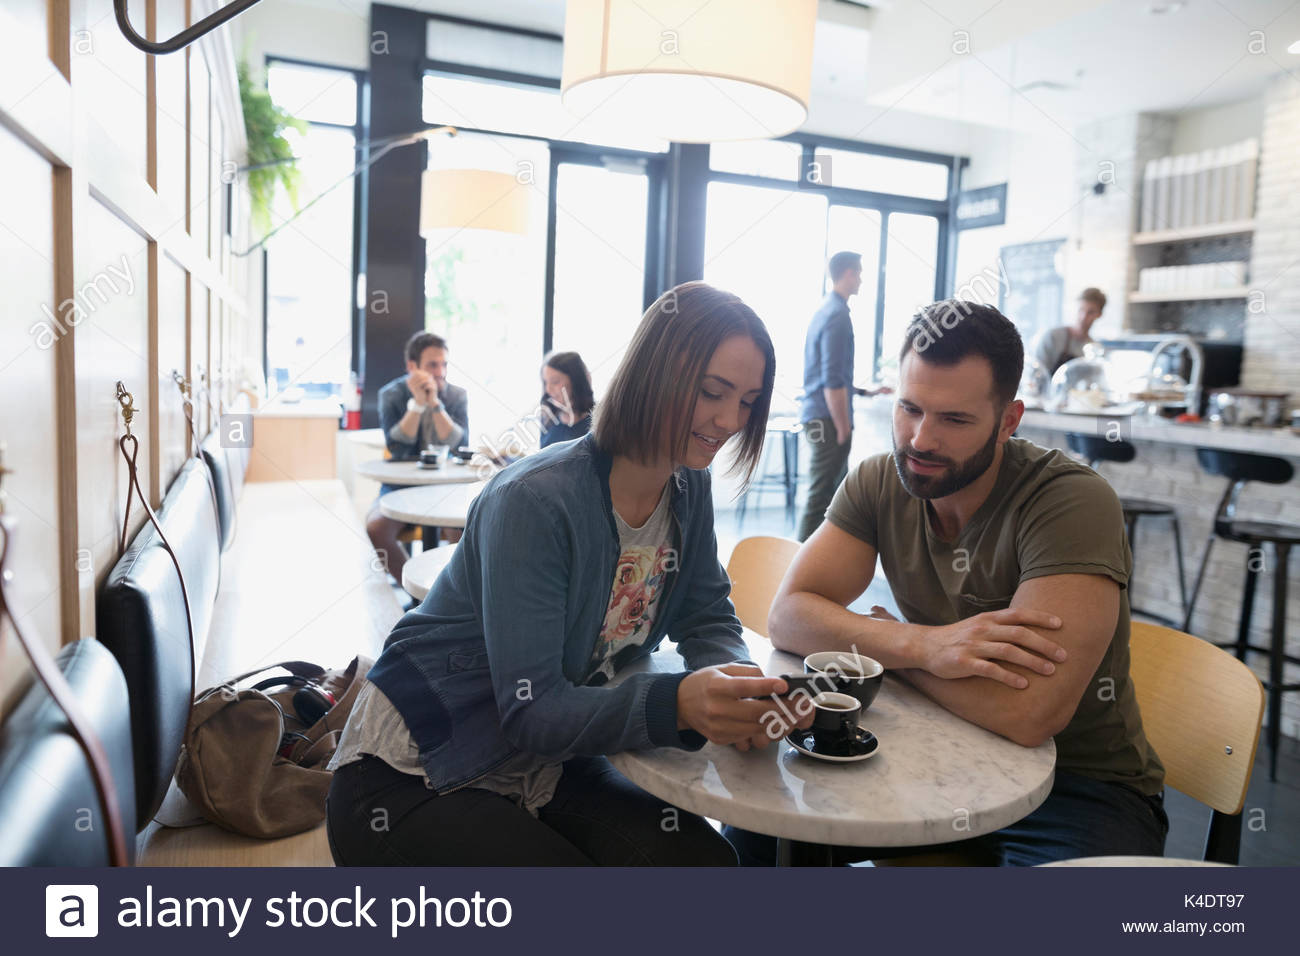 Couple drinking coffee and using cell phone in cafe Stock Photo